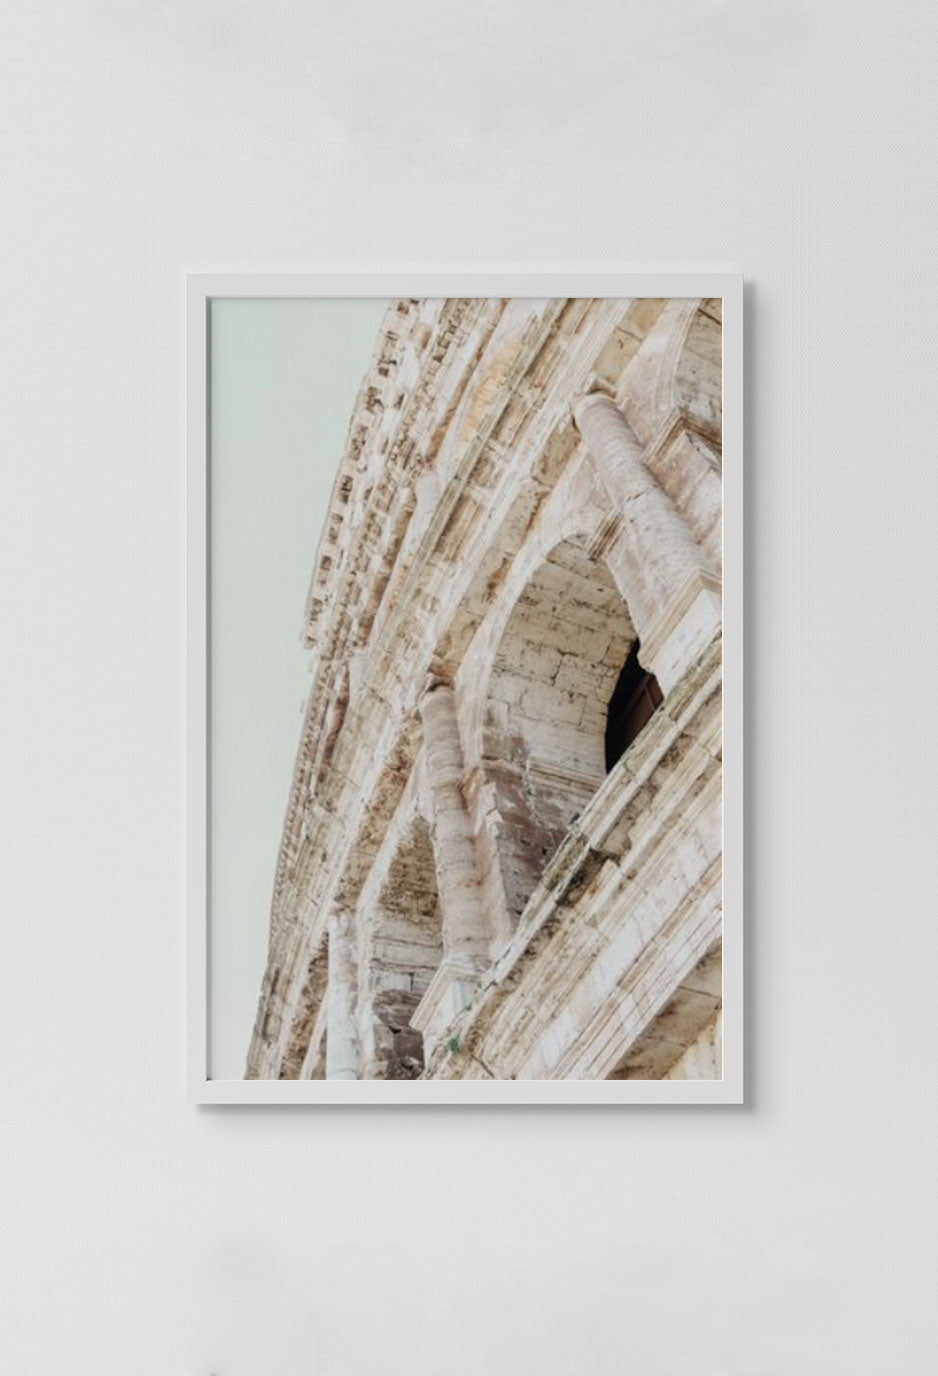 image of photograph of outside of coliseum windows looking up with sky in background in white frame on white wall.